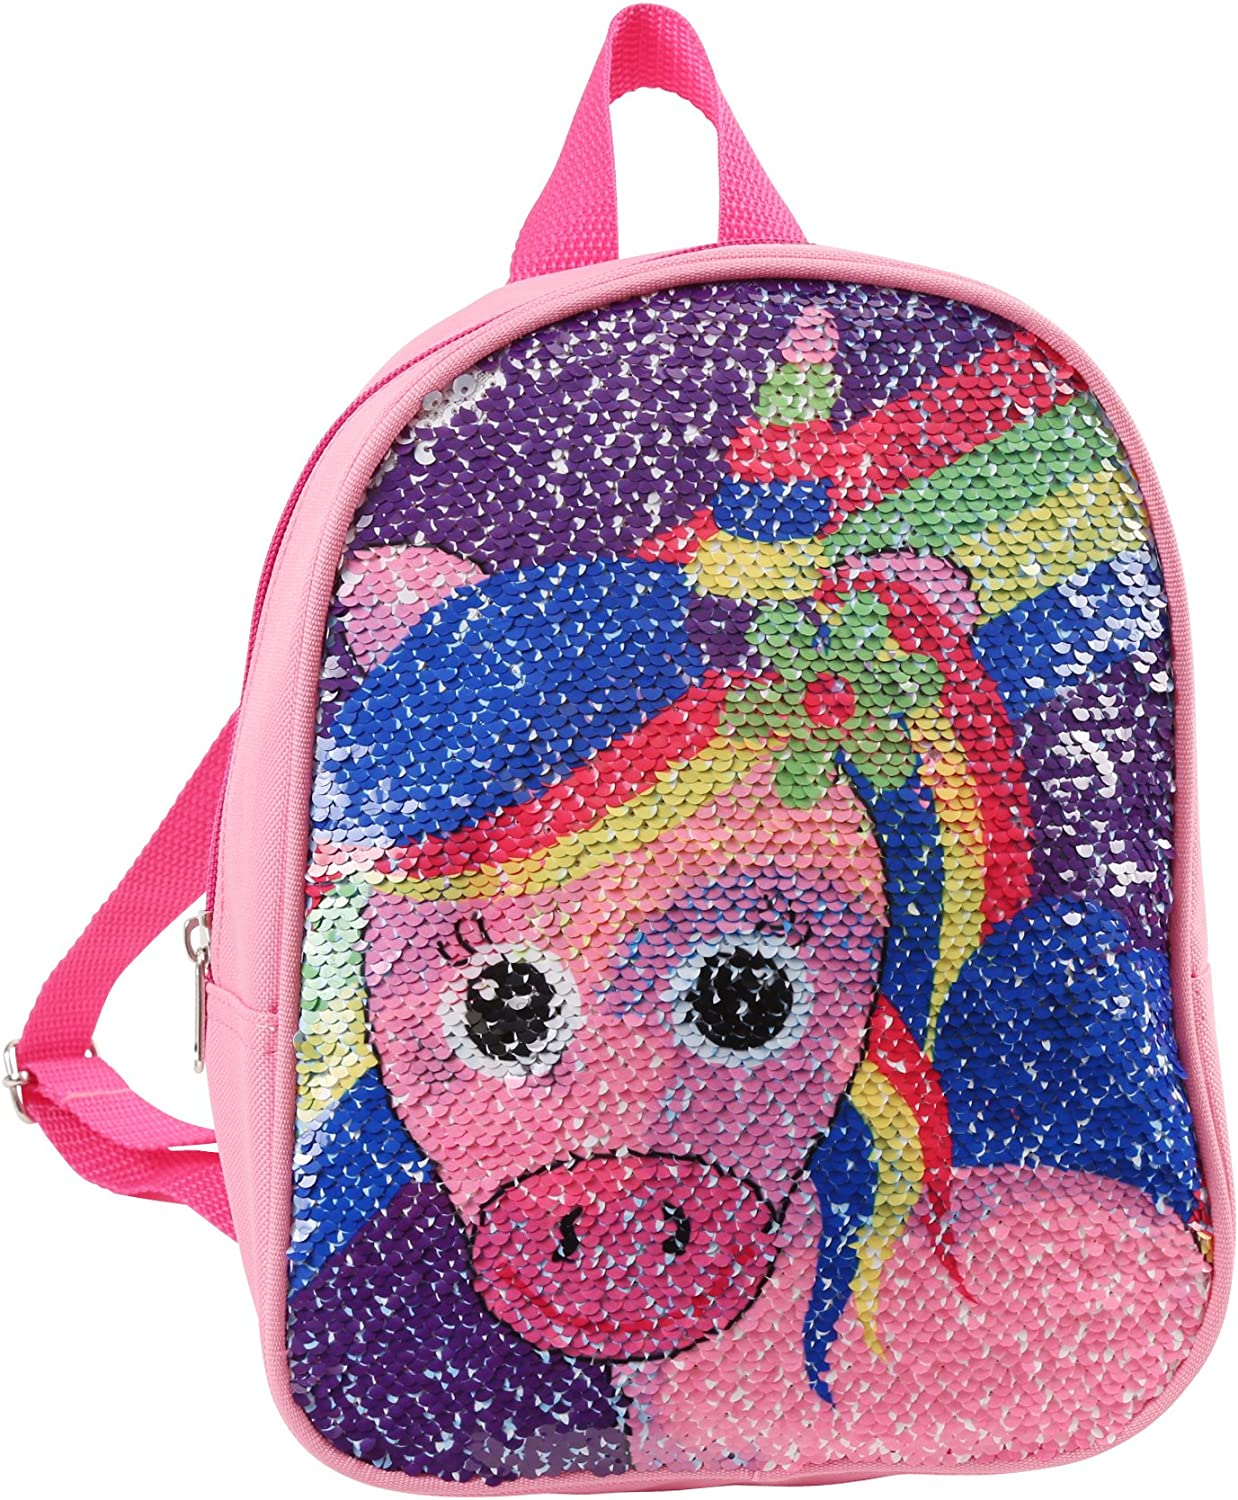 Confetti Al New product! New type sold out. Girls' Backpack Mini